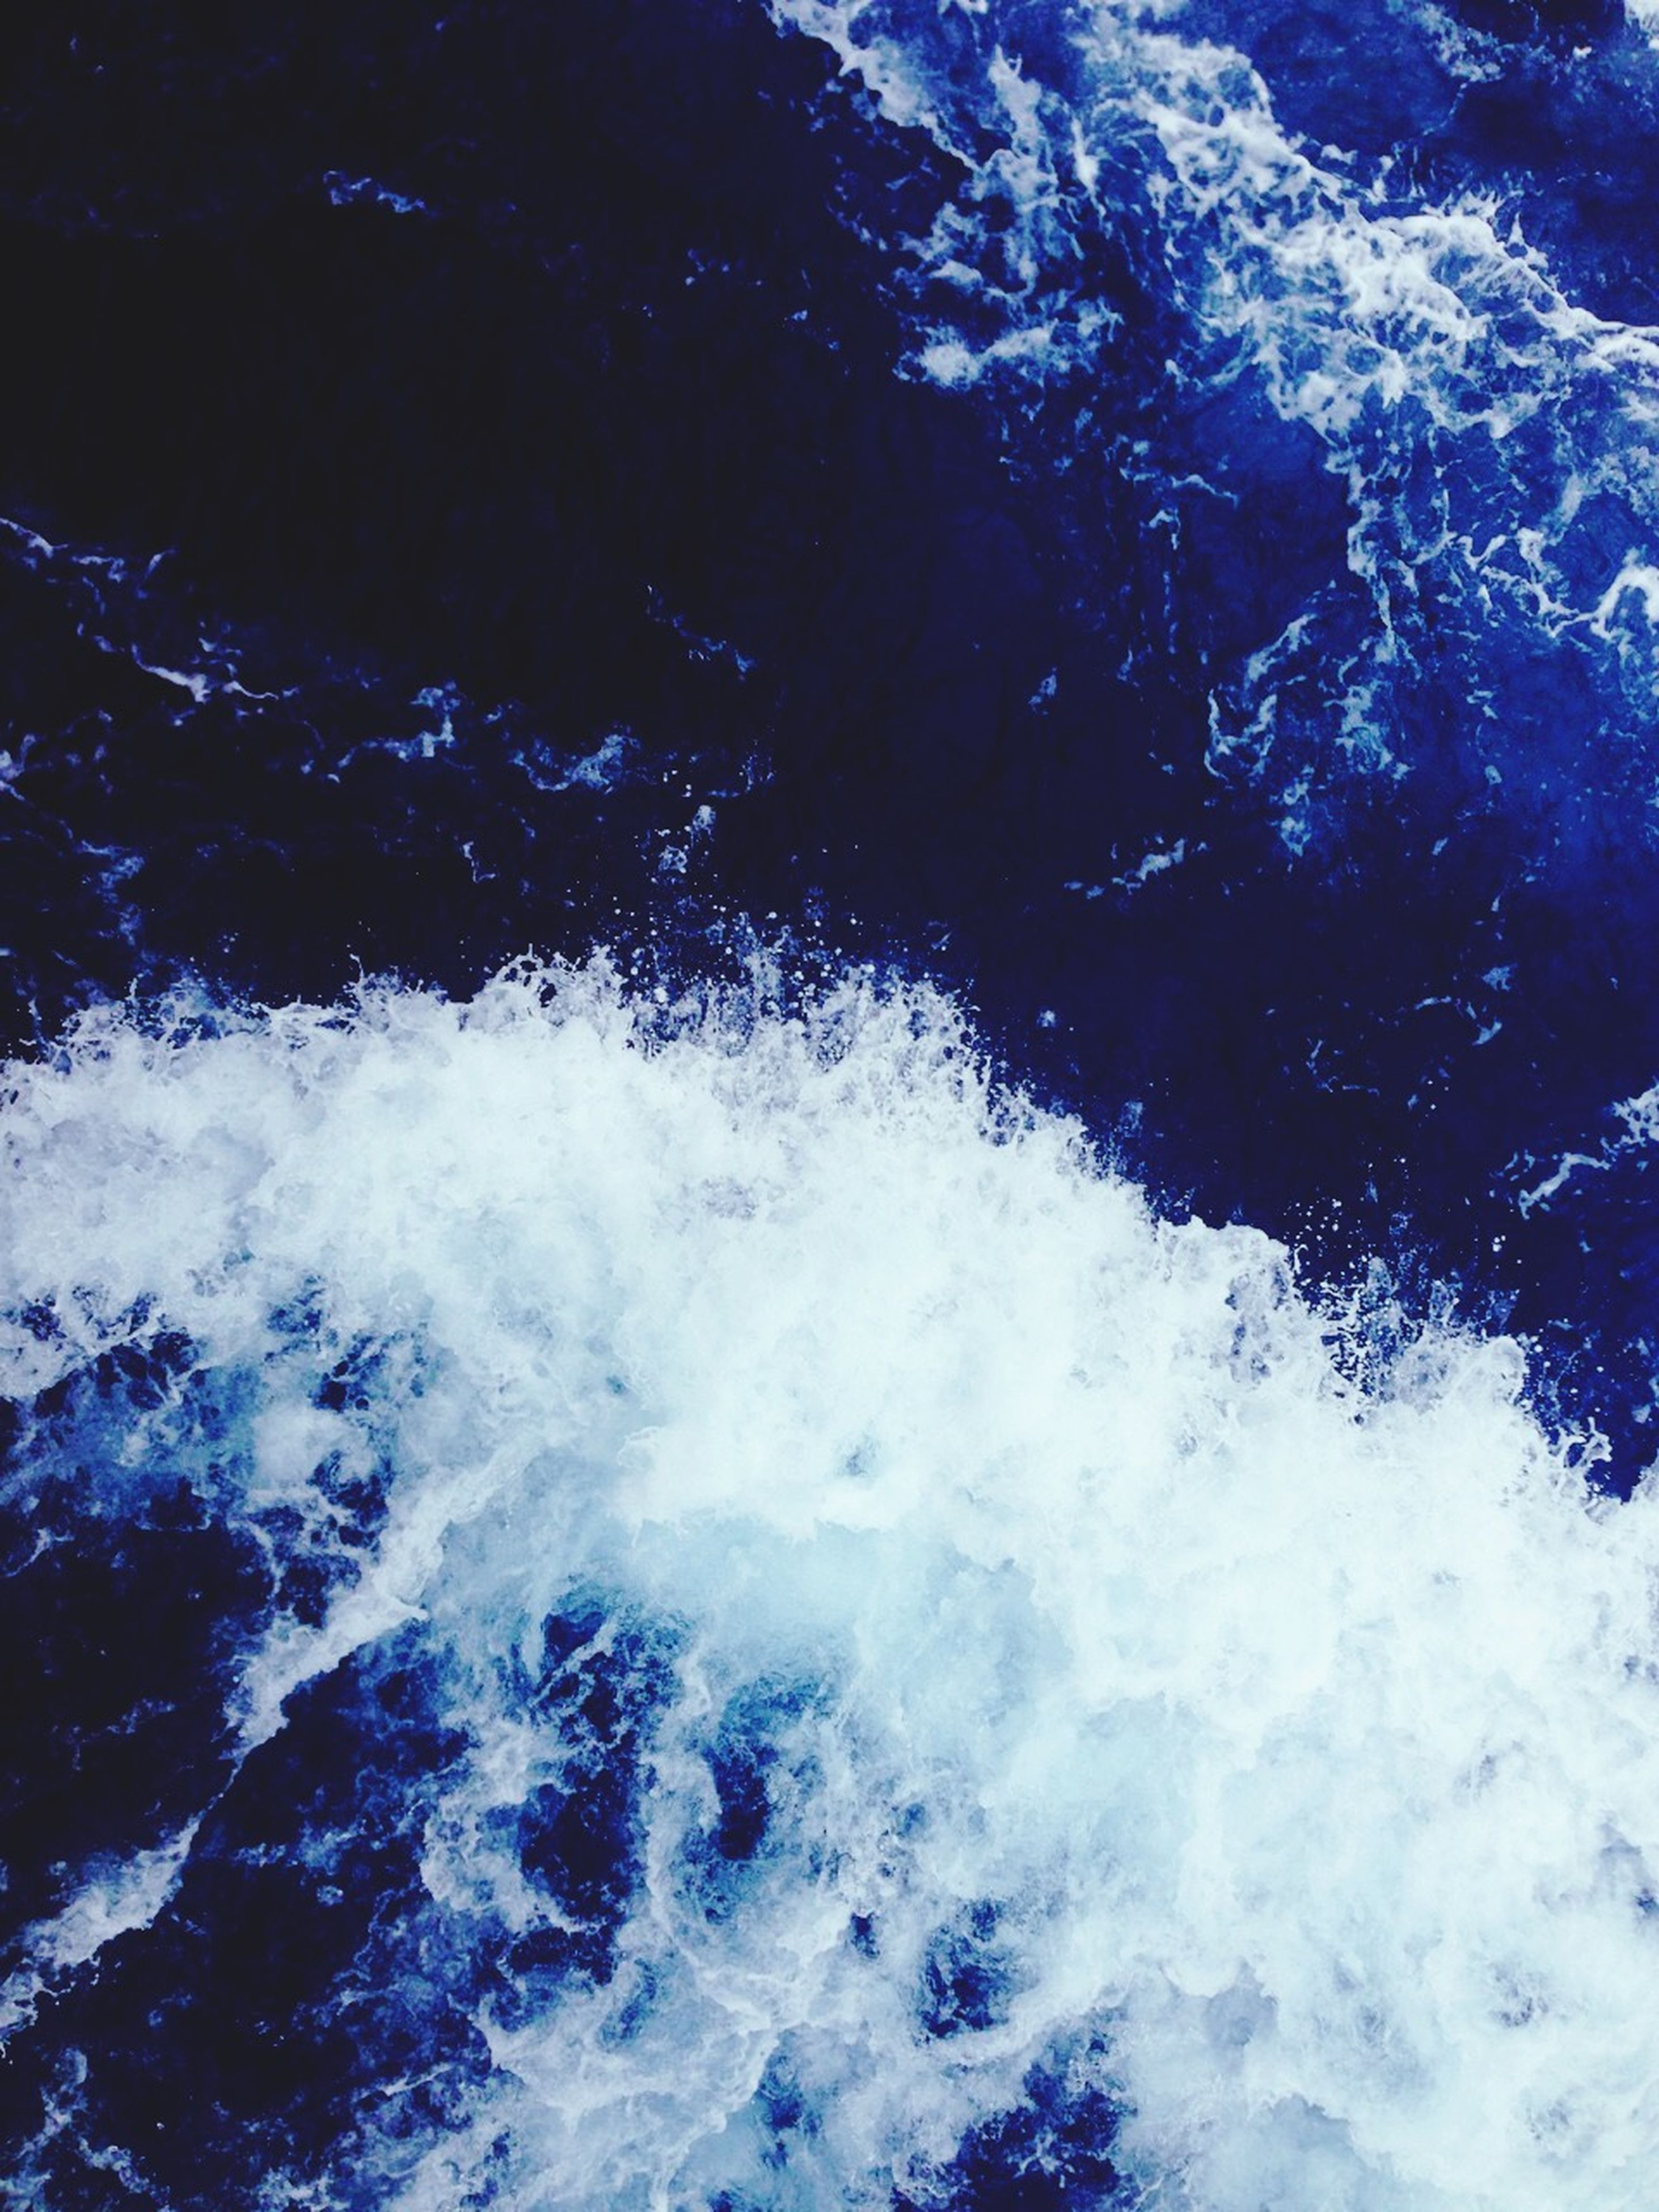 water, surf, motion, sea, wave, nature, beauty in nature, waterfront, splashing, high angle view, power in nature, day, outdoors, scenics, no people, flowing water, close-up, rock - object, white color, tranquility